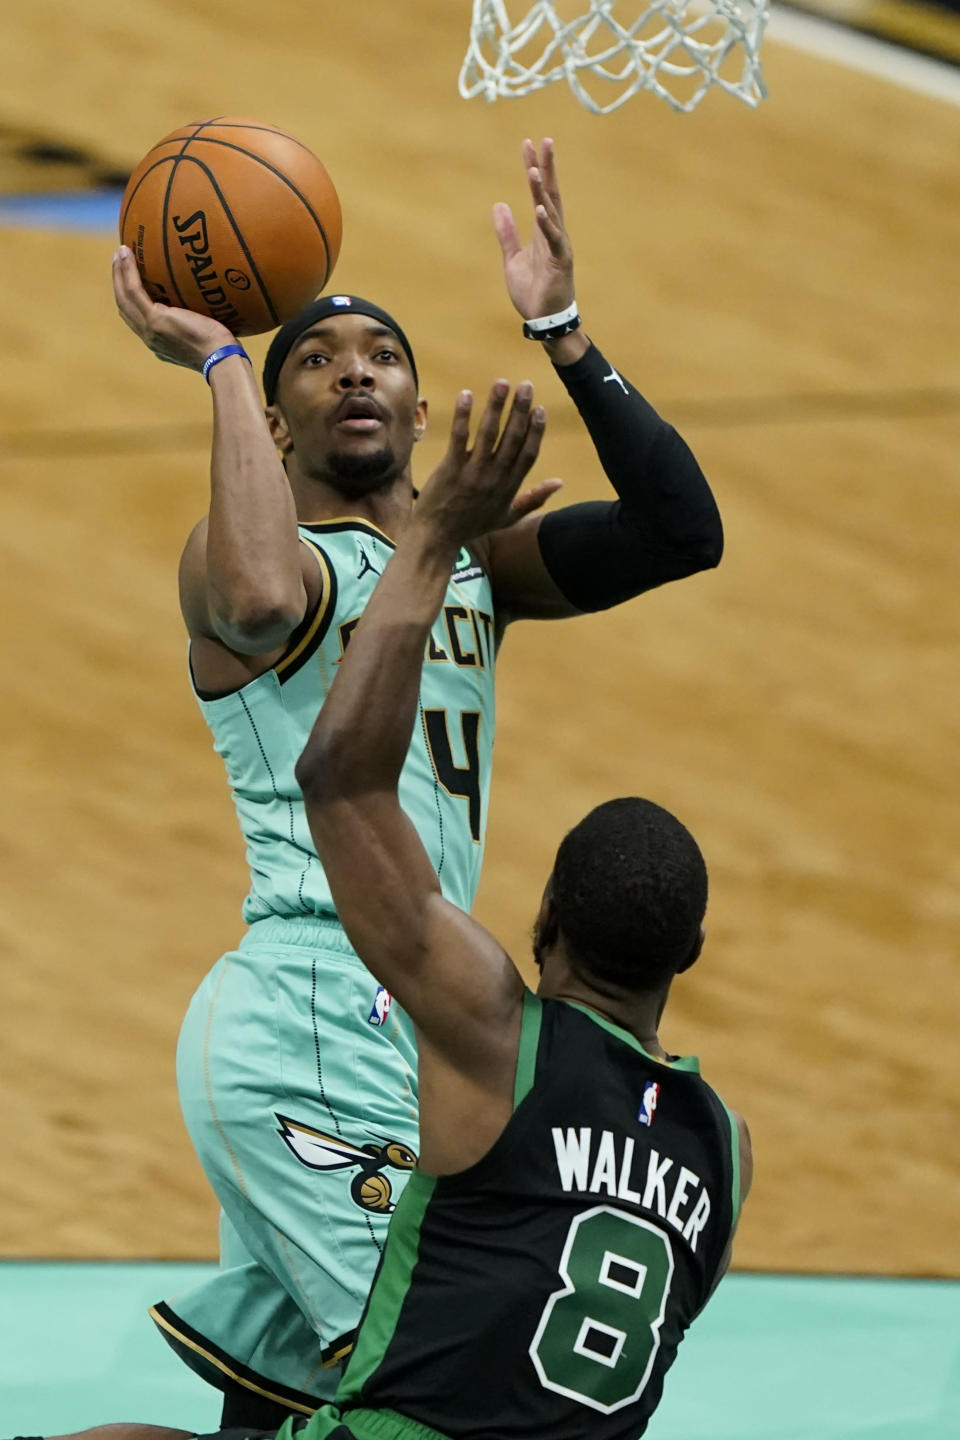 Charlotte Hornets guard Devonte' Graham shoots over Boston Celtics guard Kemba Walker during the first half of an NBA basketball game on Sunday, April 25, 2021, in Charlotte, N.C. (AP Photo/Chris Carlson)